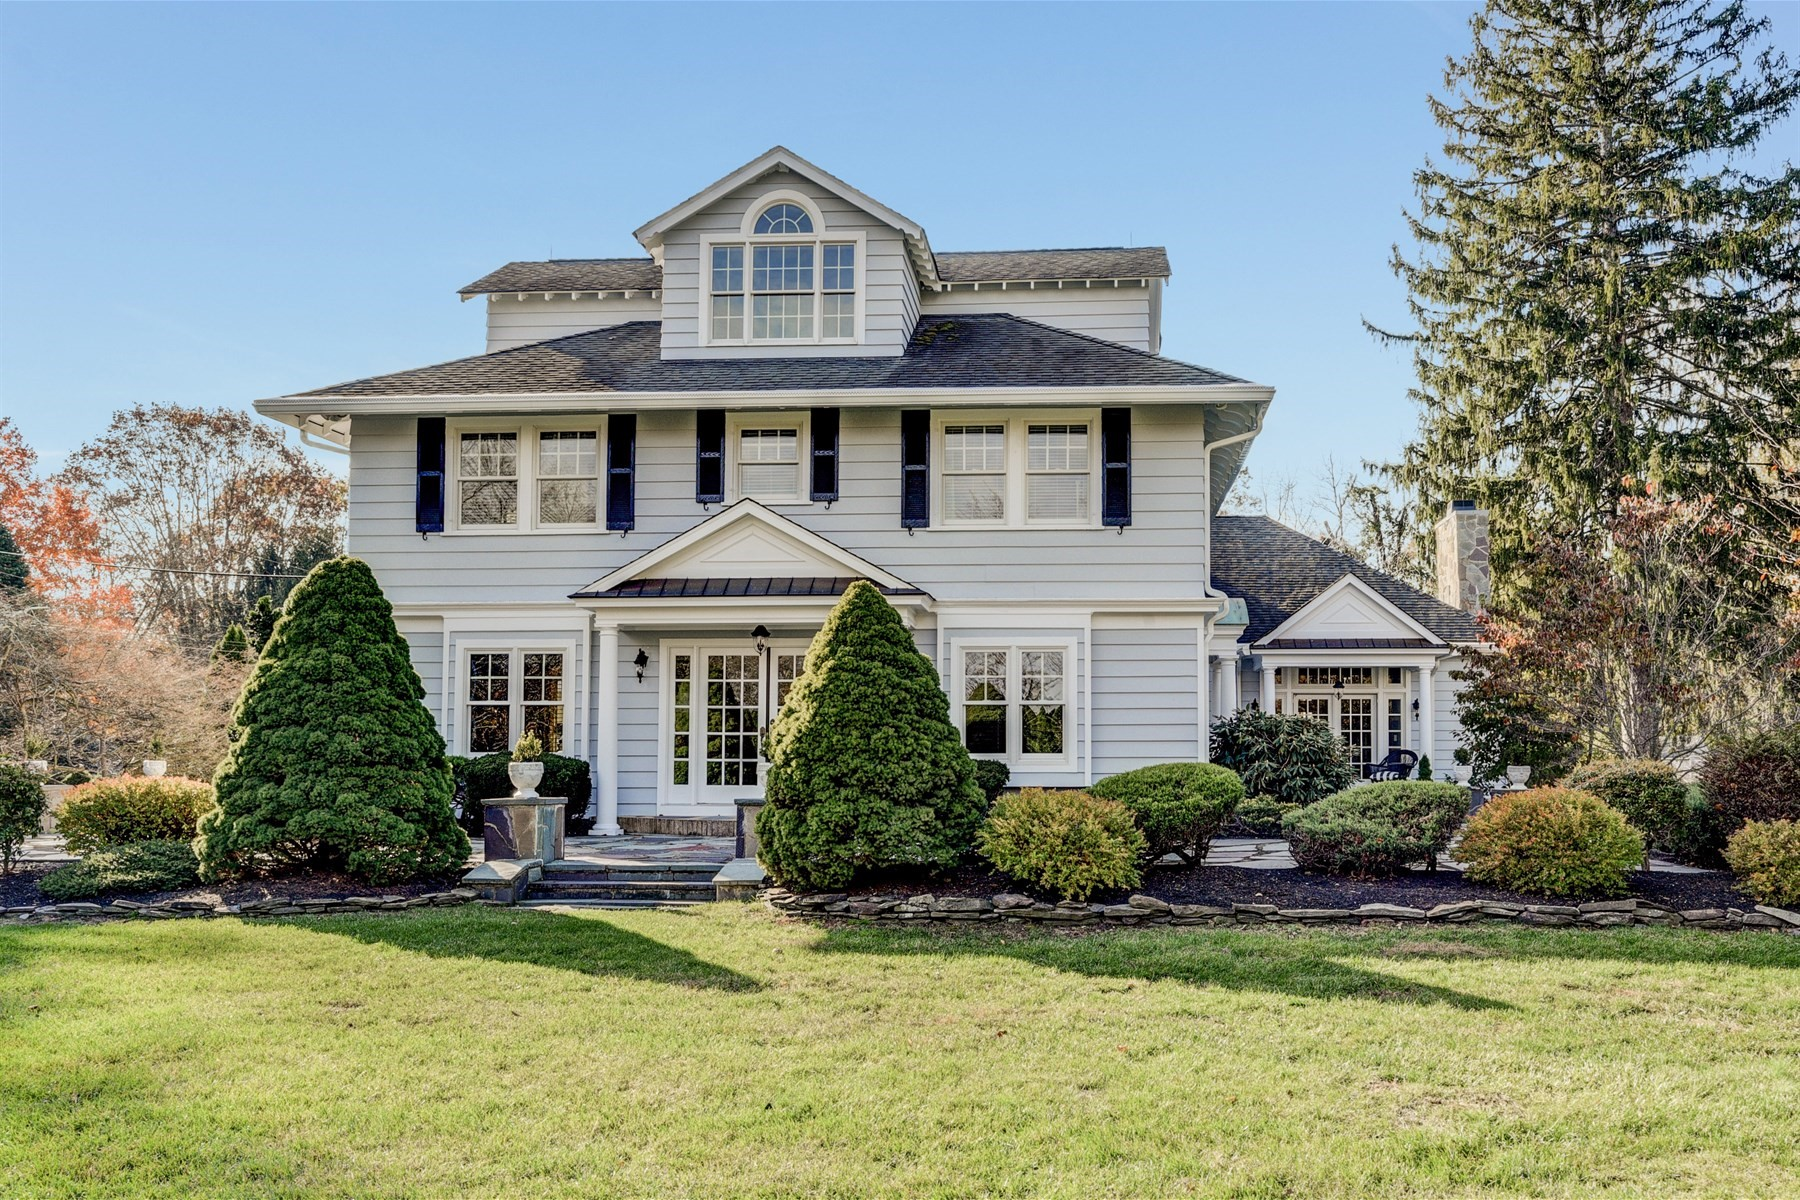 Villa per Vendita alle ore 40 Blossom Cove Road Red Bank, New Jersey 07701 Stati Uniti